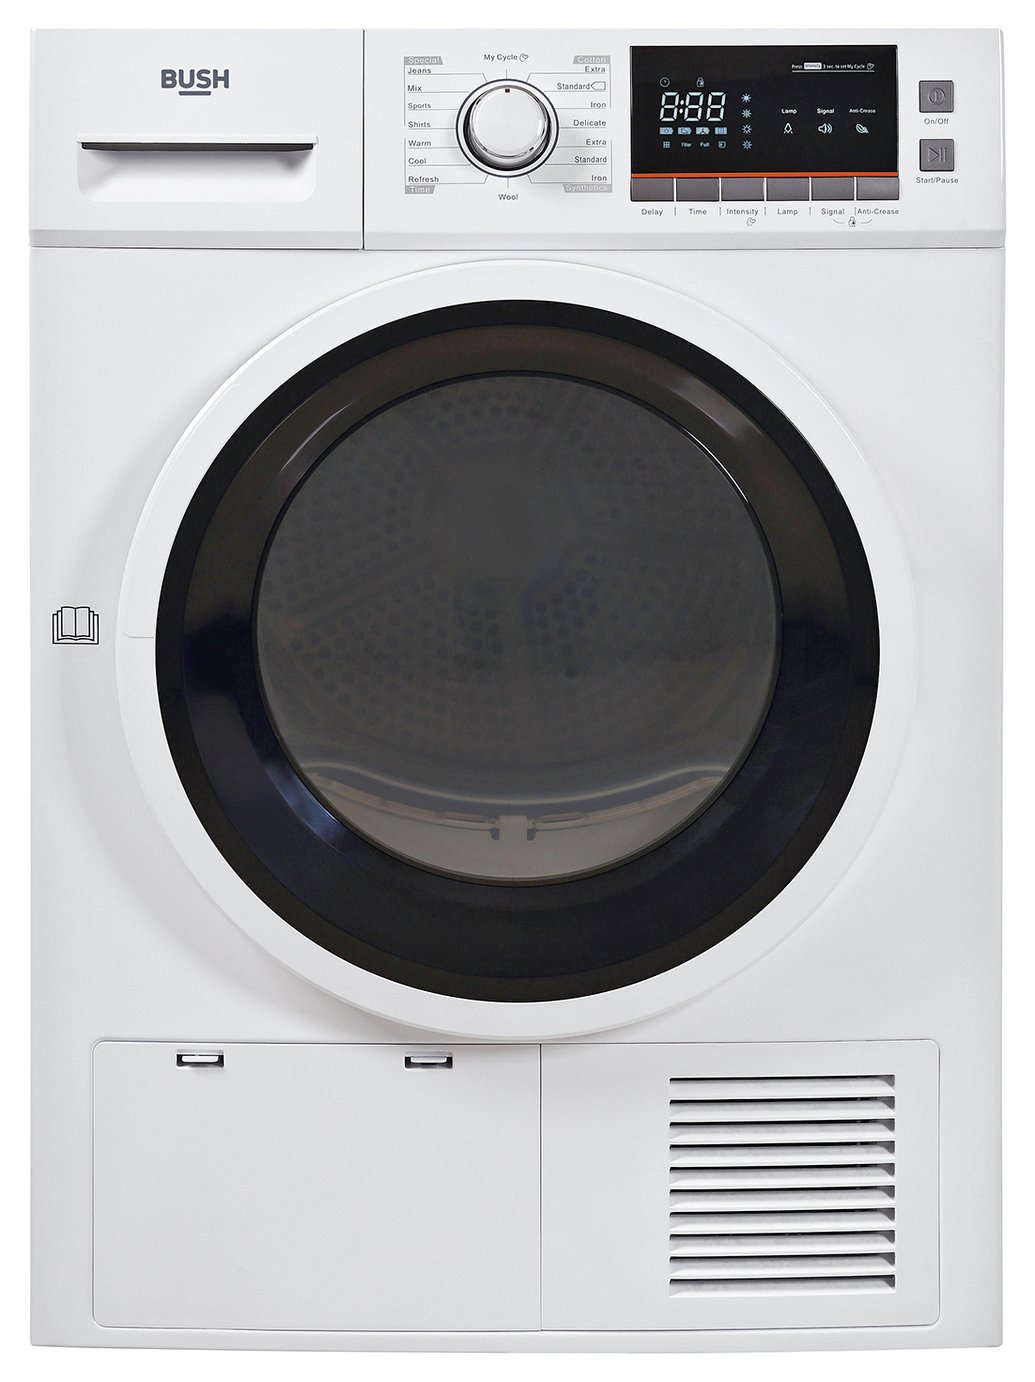 Bush TDNBX8HP 8KG Heat Pump Tumble Dryer - White